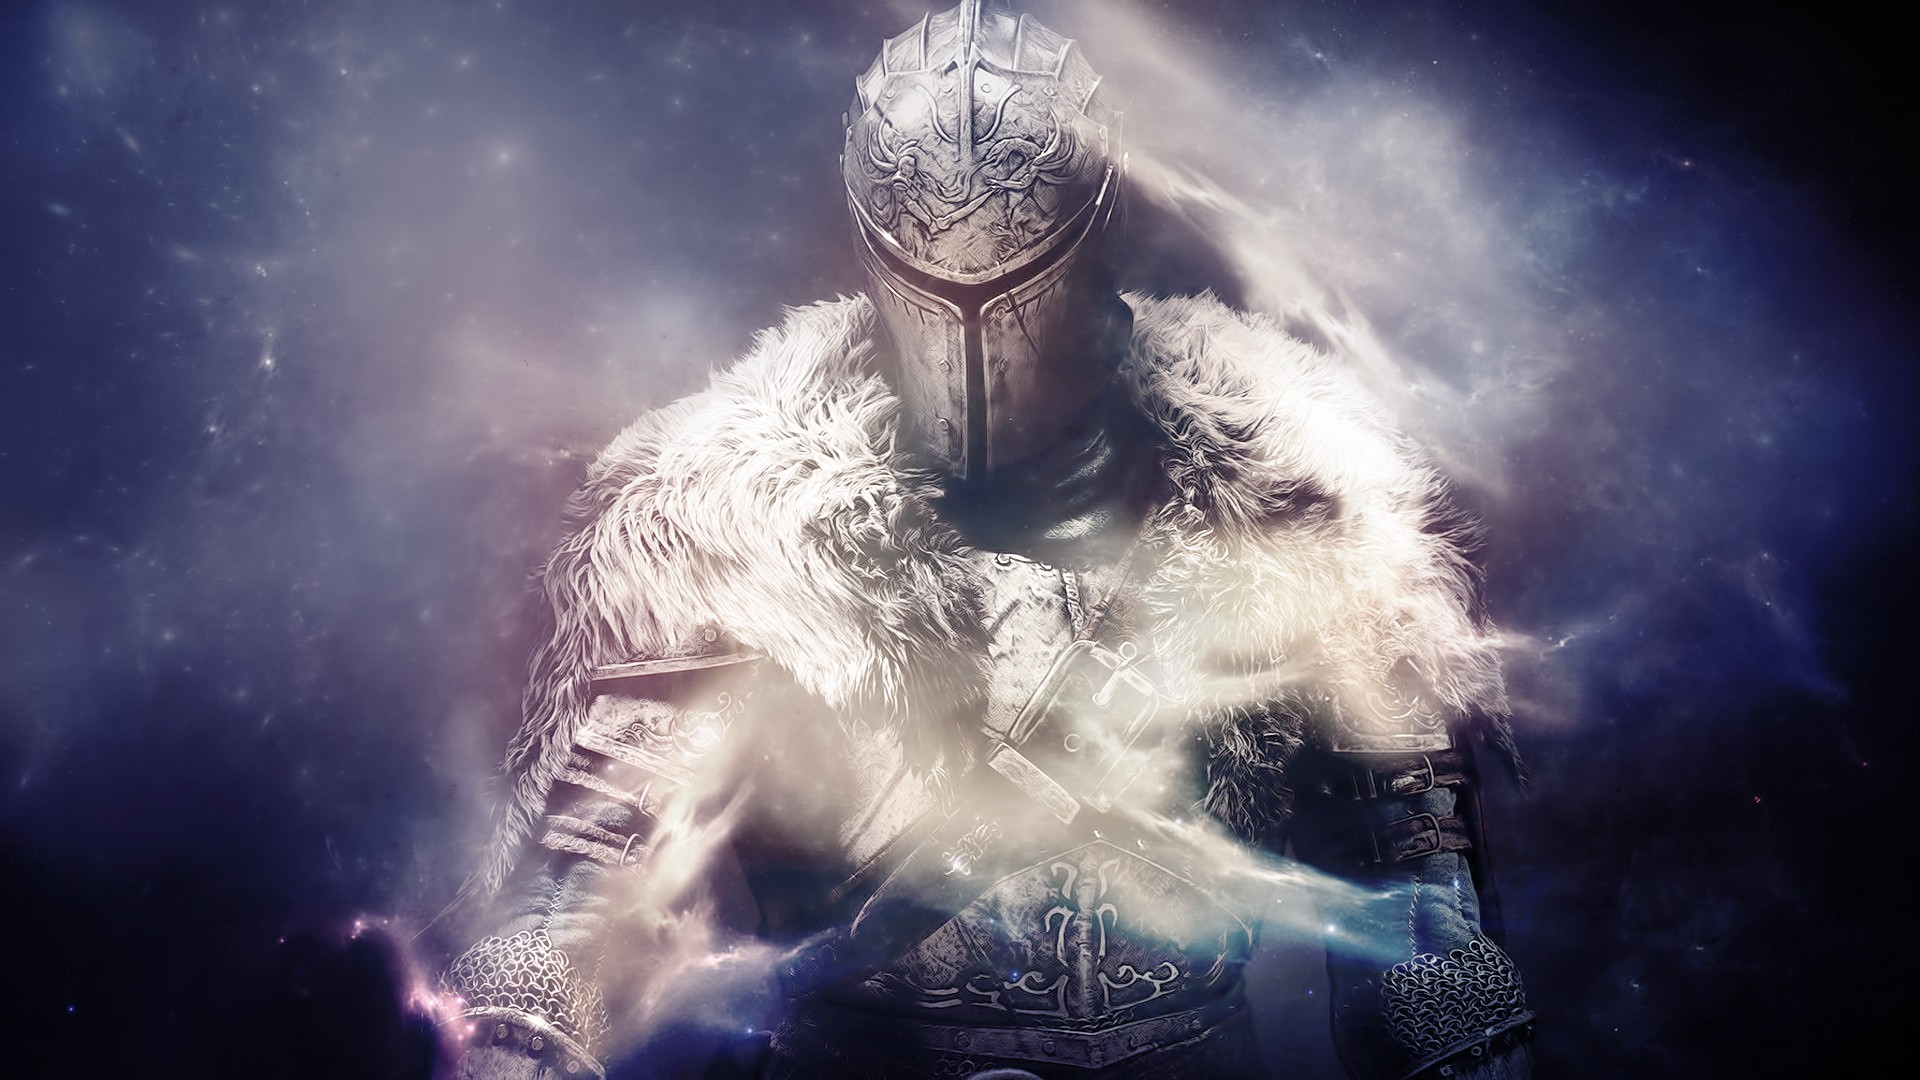 Dark Souls Wallpaper Download Free Awesome Hd Backgrounds For